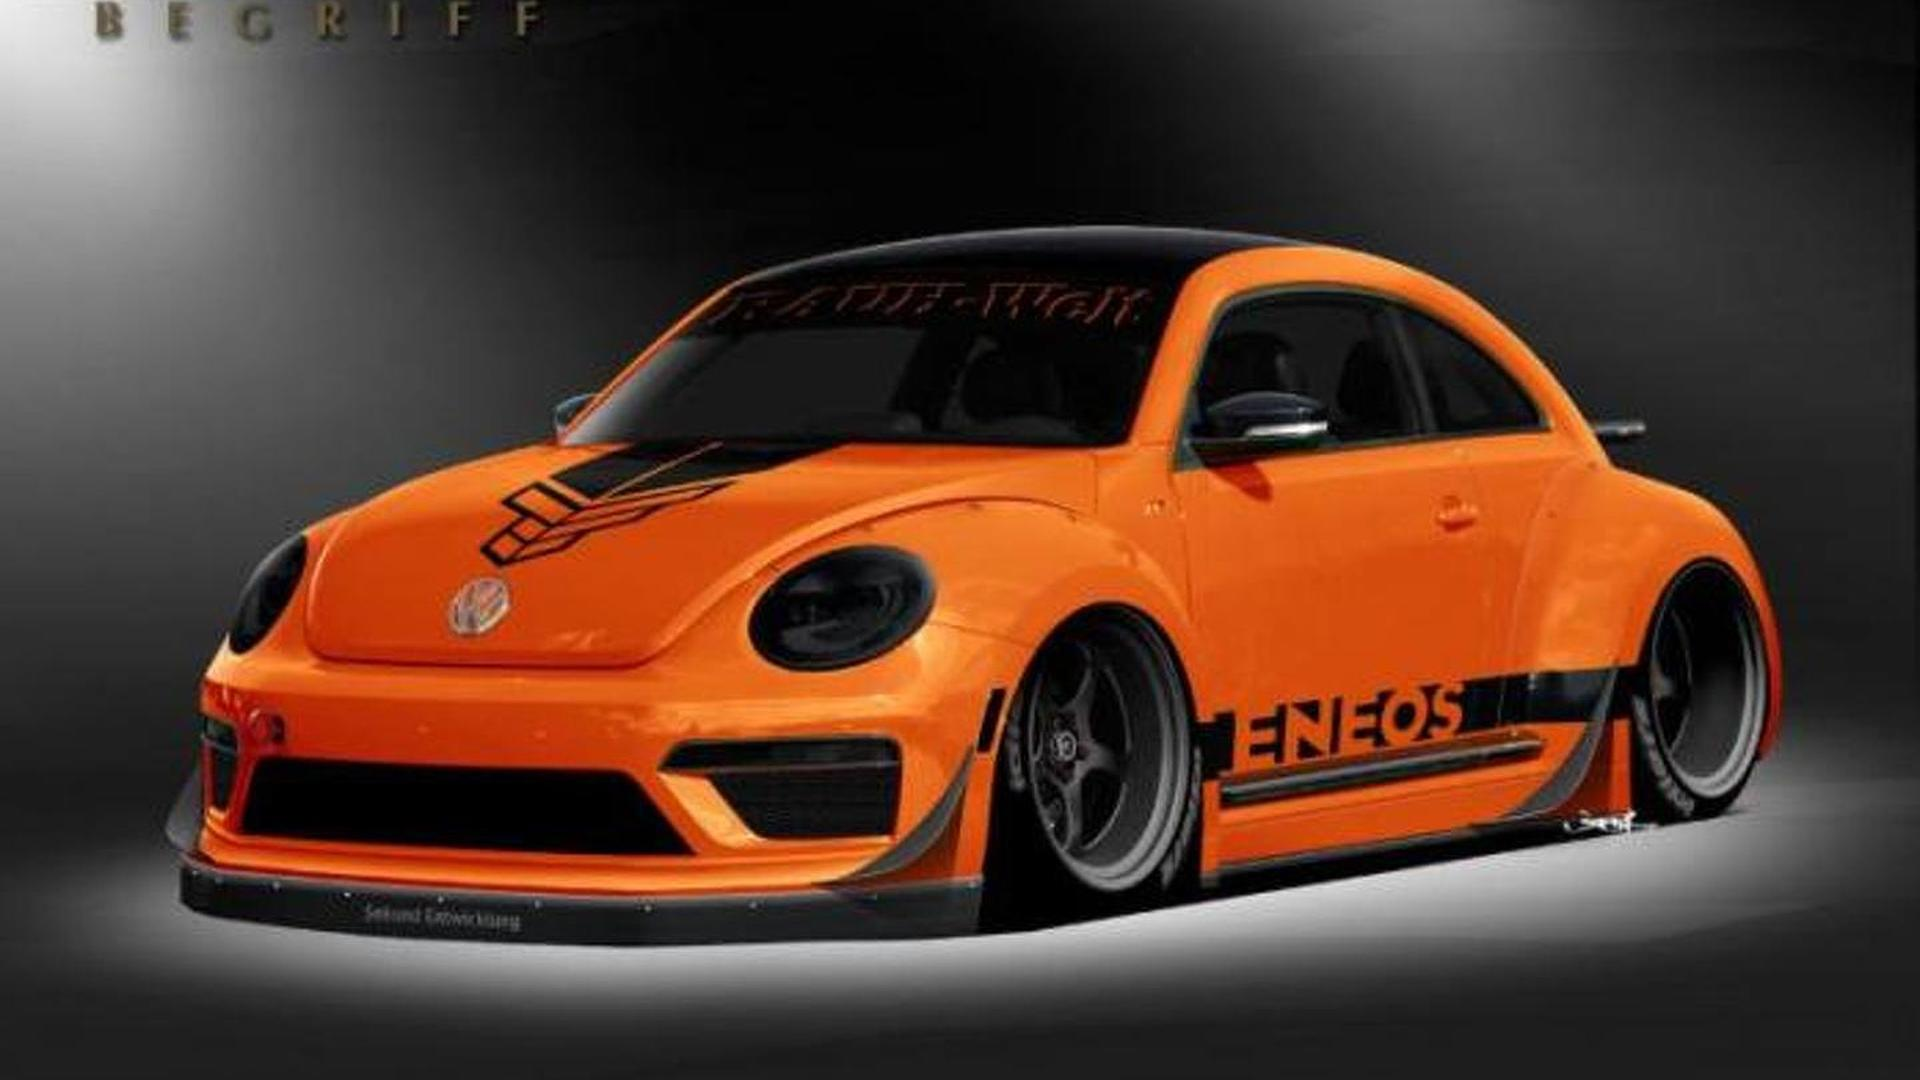 Tanner Foust Vw >> Customized Volkswagen Beetle Unveiled At Sema By Tanner